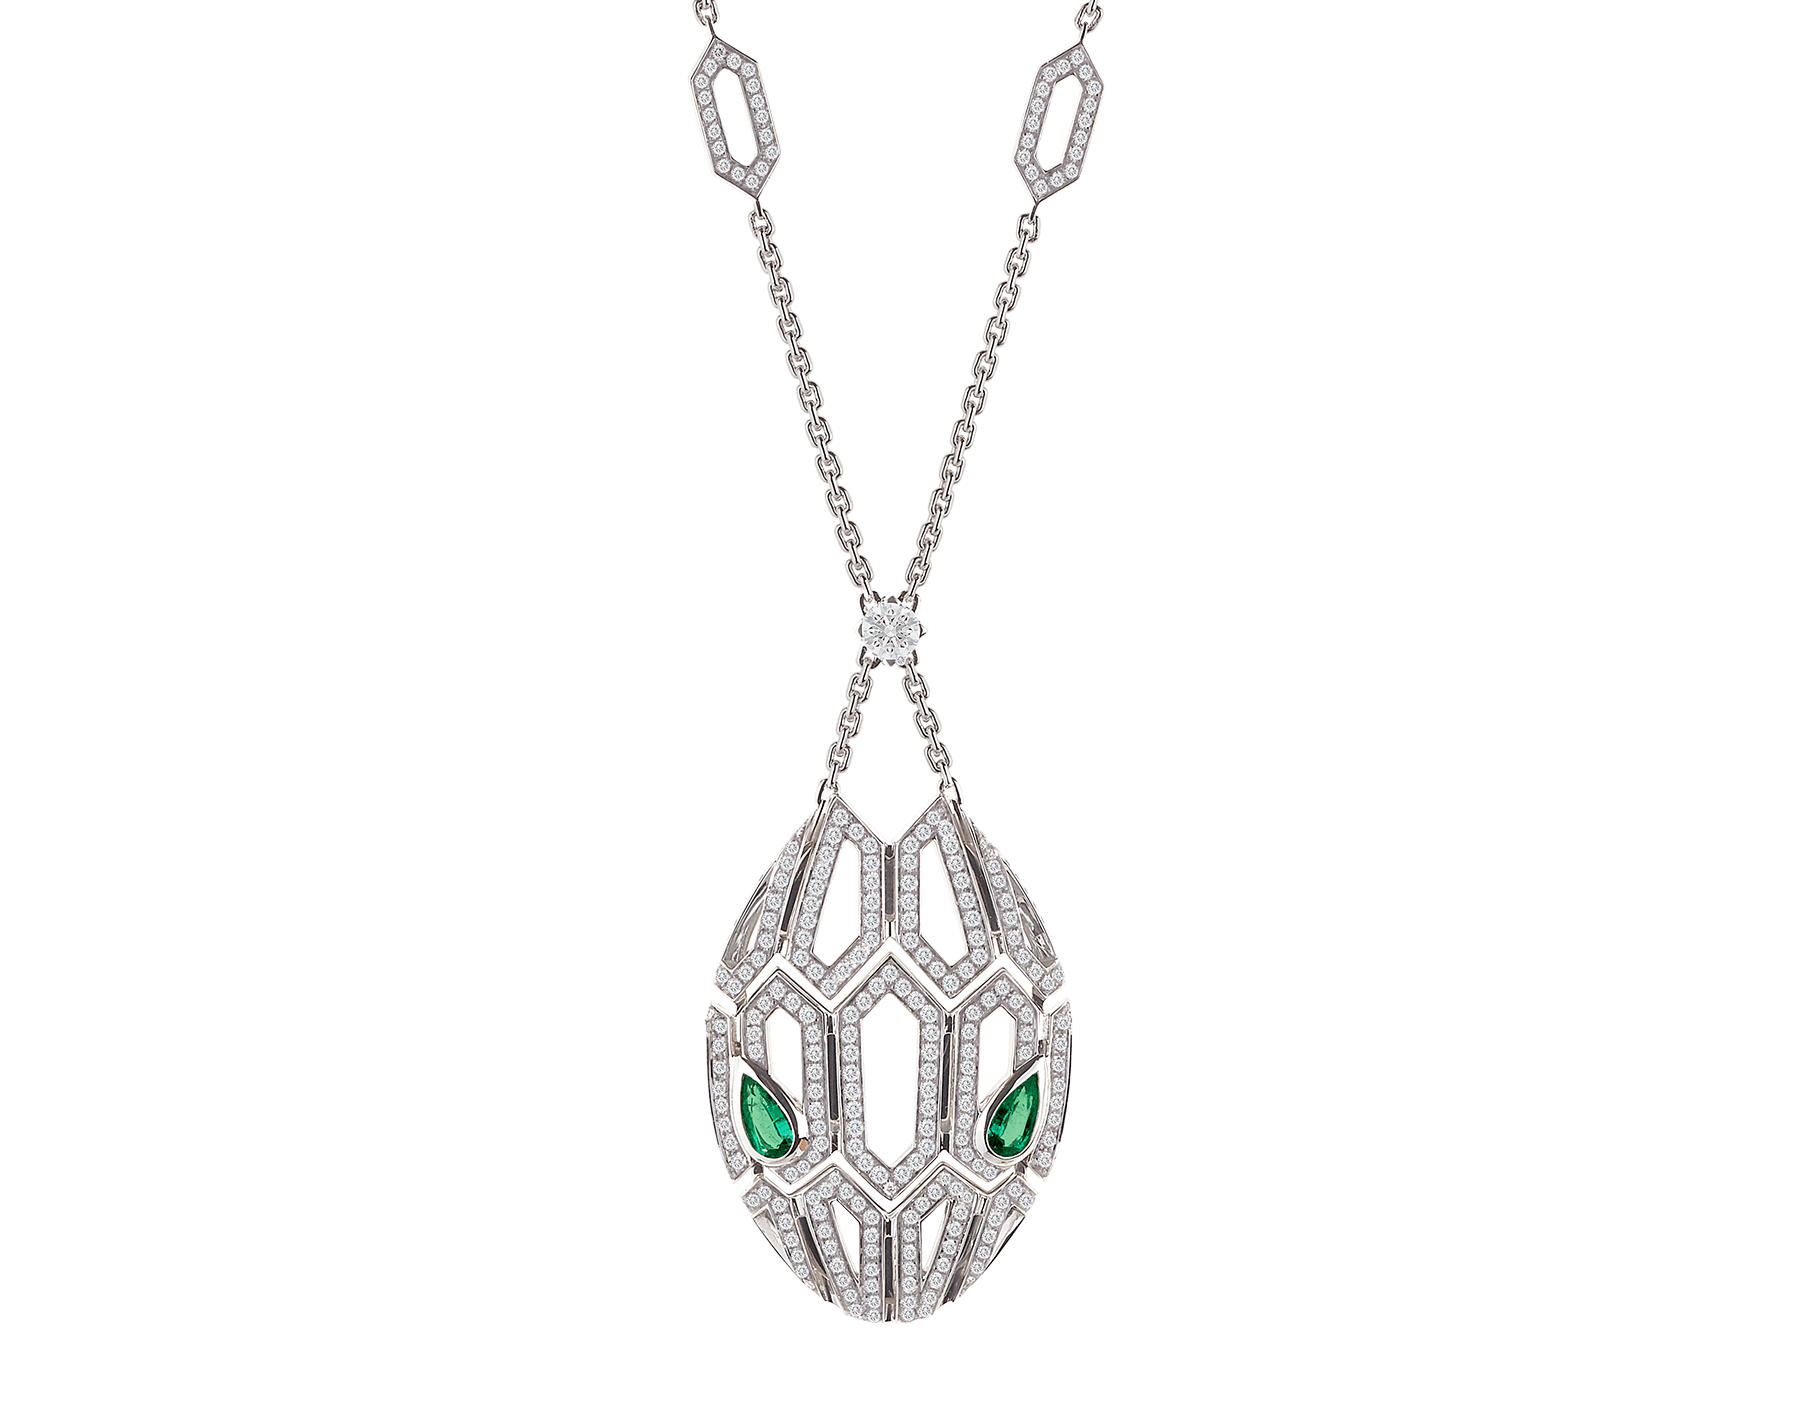 Serpenti necklace in 18 kt white gold, set with emerald eyes and pavé diamonds both on the chain and the pendant. 352752 image 1